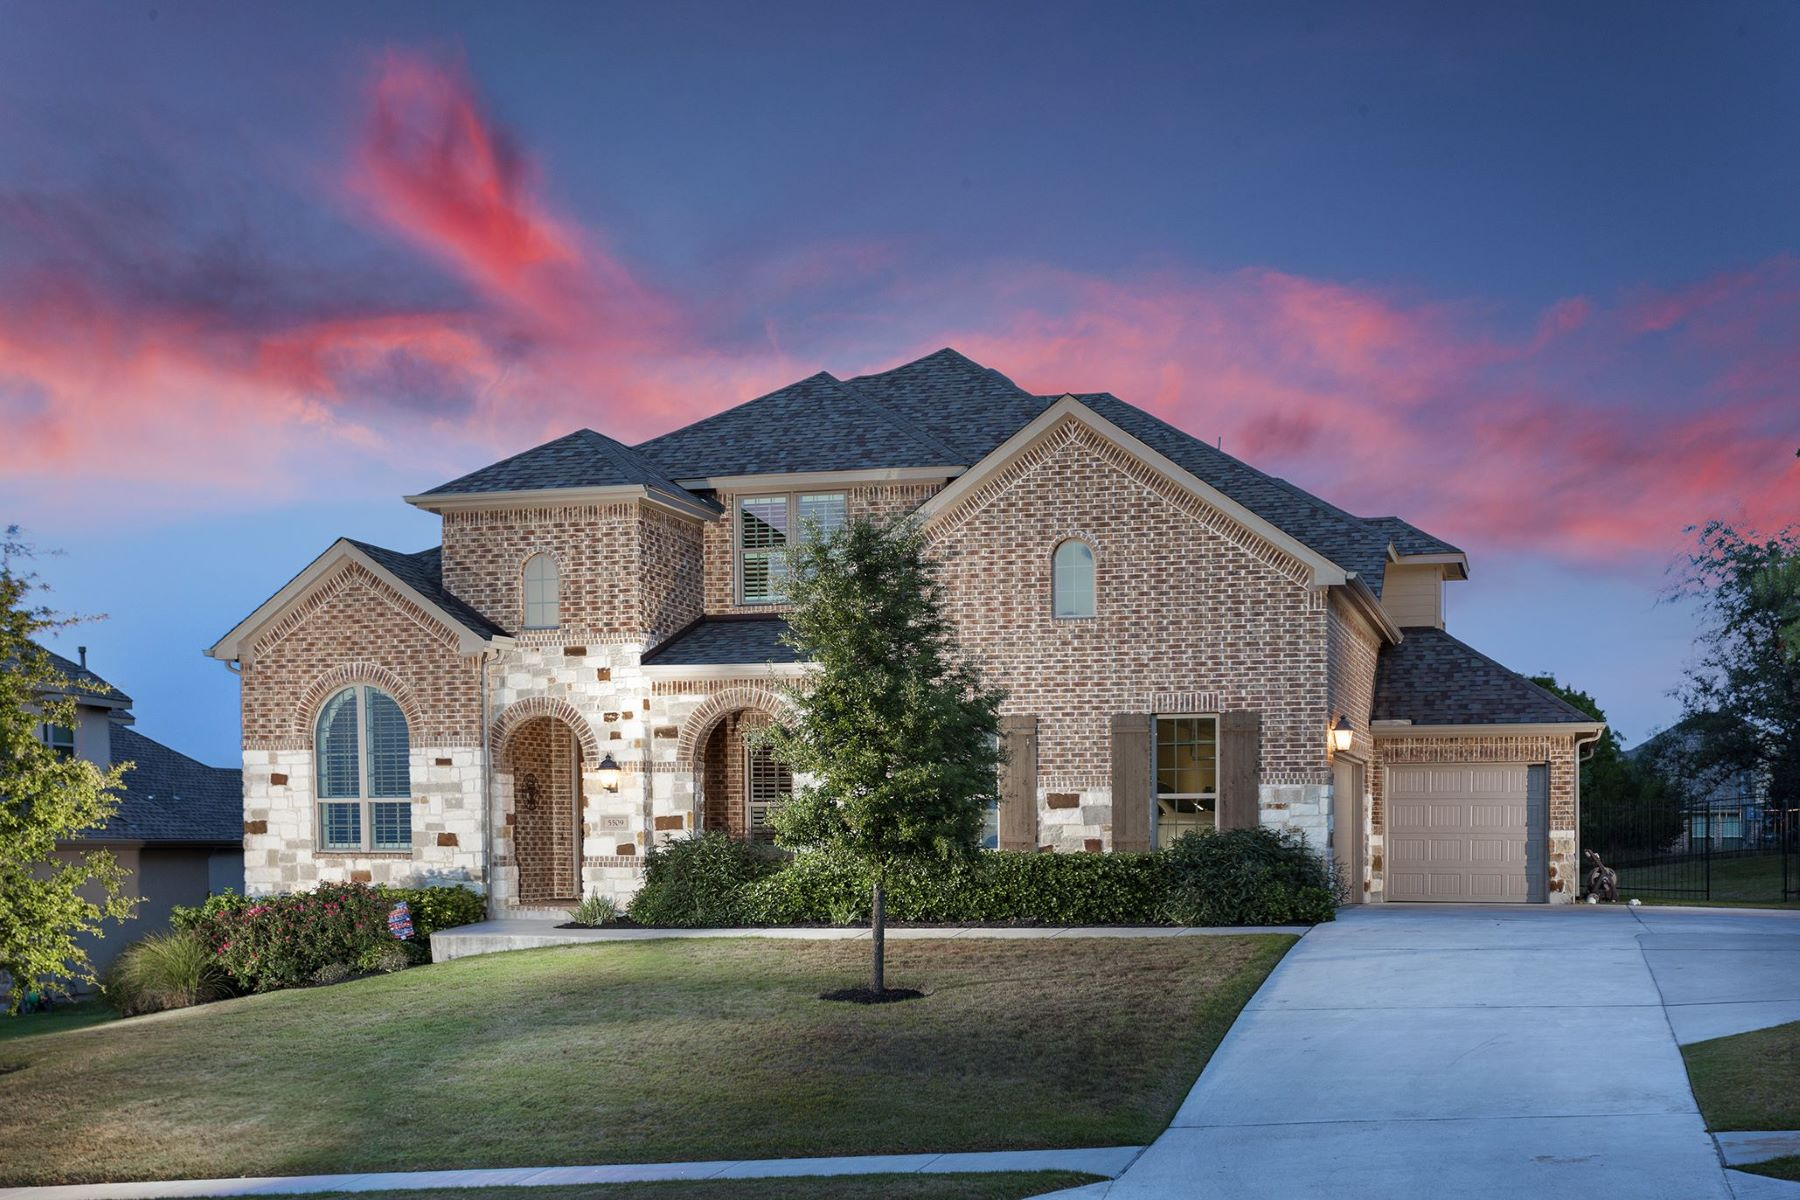 Single Family Homes for Sale at 5509 Cypress Ranch Boulevard, Spicewood, TX 78669 5509 Cypress Ranch Boulevard Spicewood, Texas 78669 United States